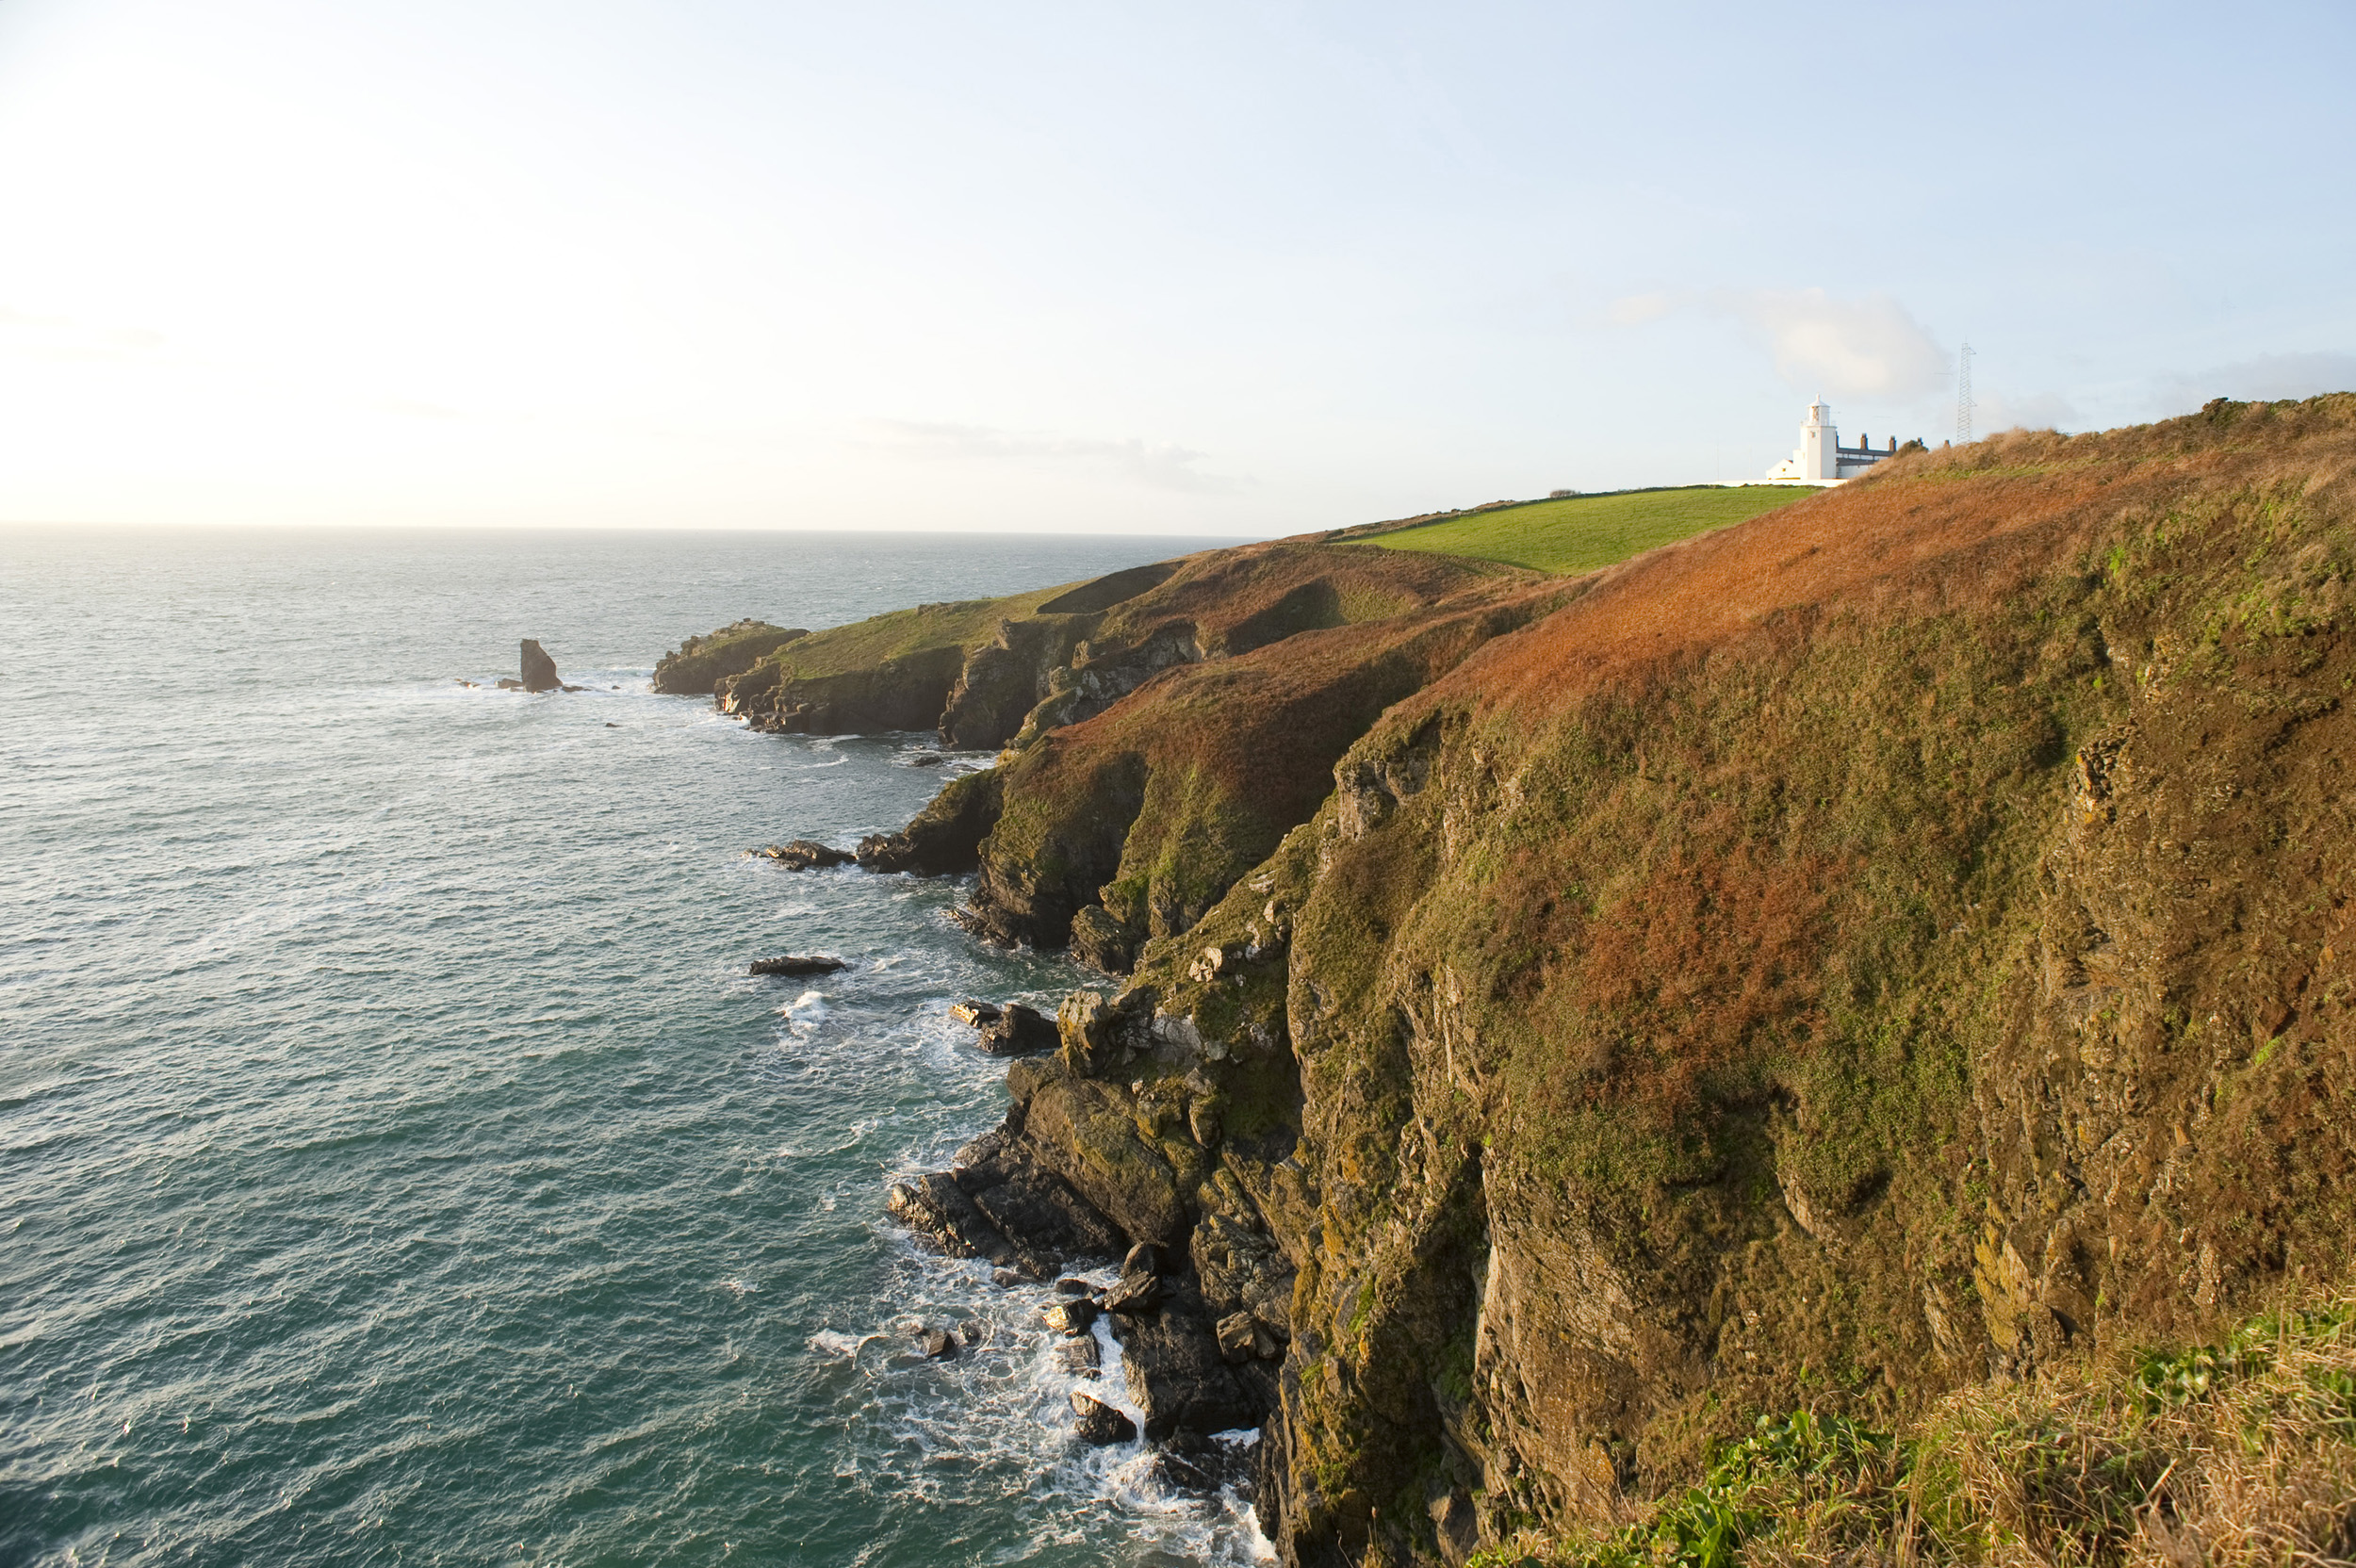 Englands most southerly point, Lizard Point